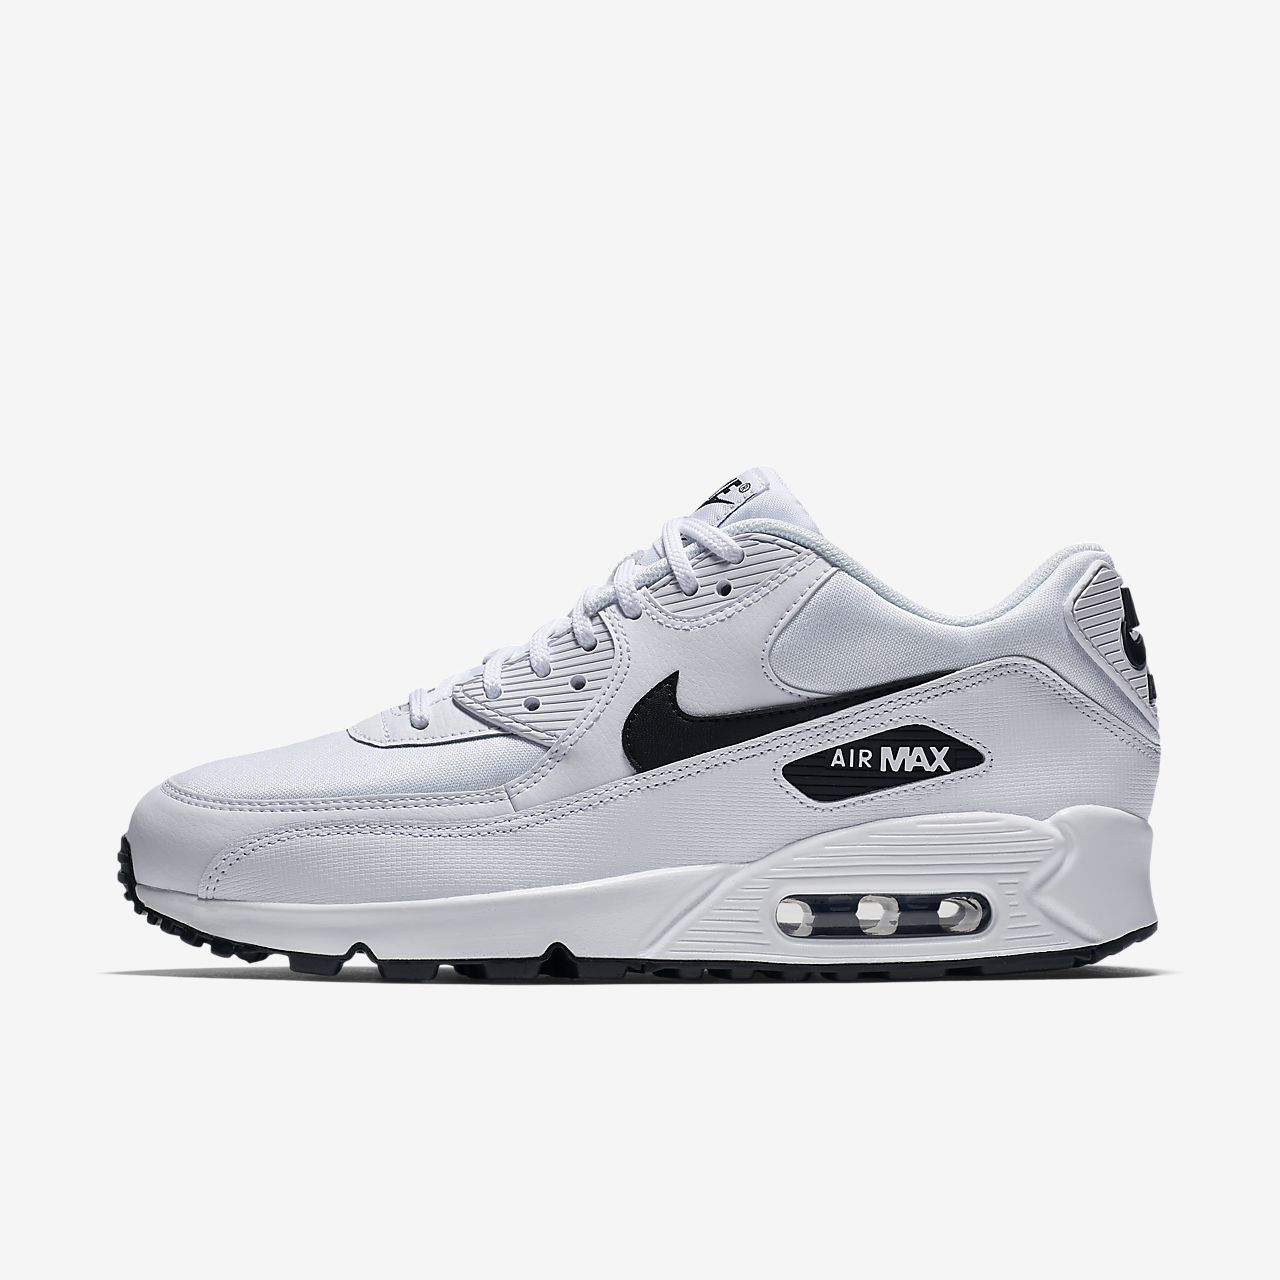 Nike Women's 'Air Max 90' Sneaker